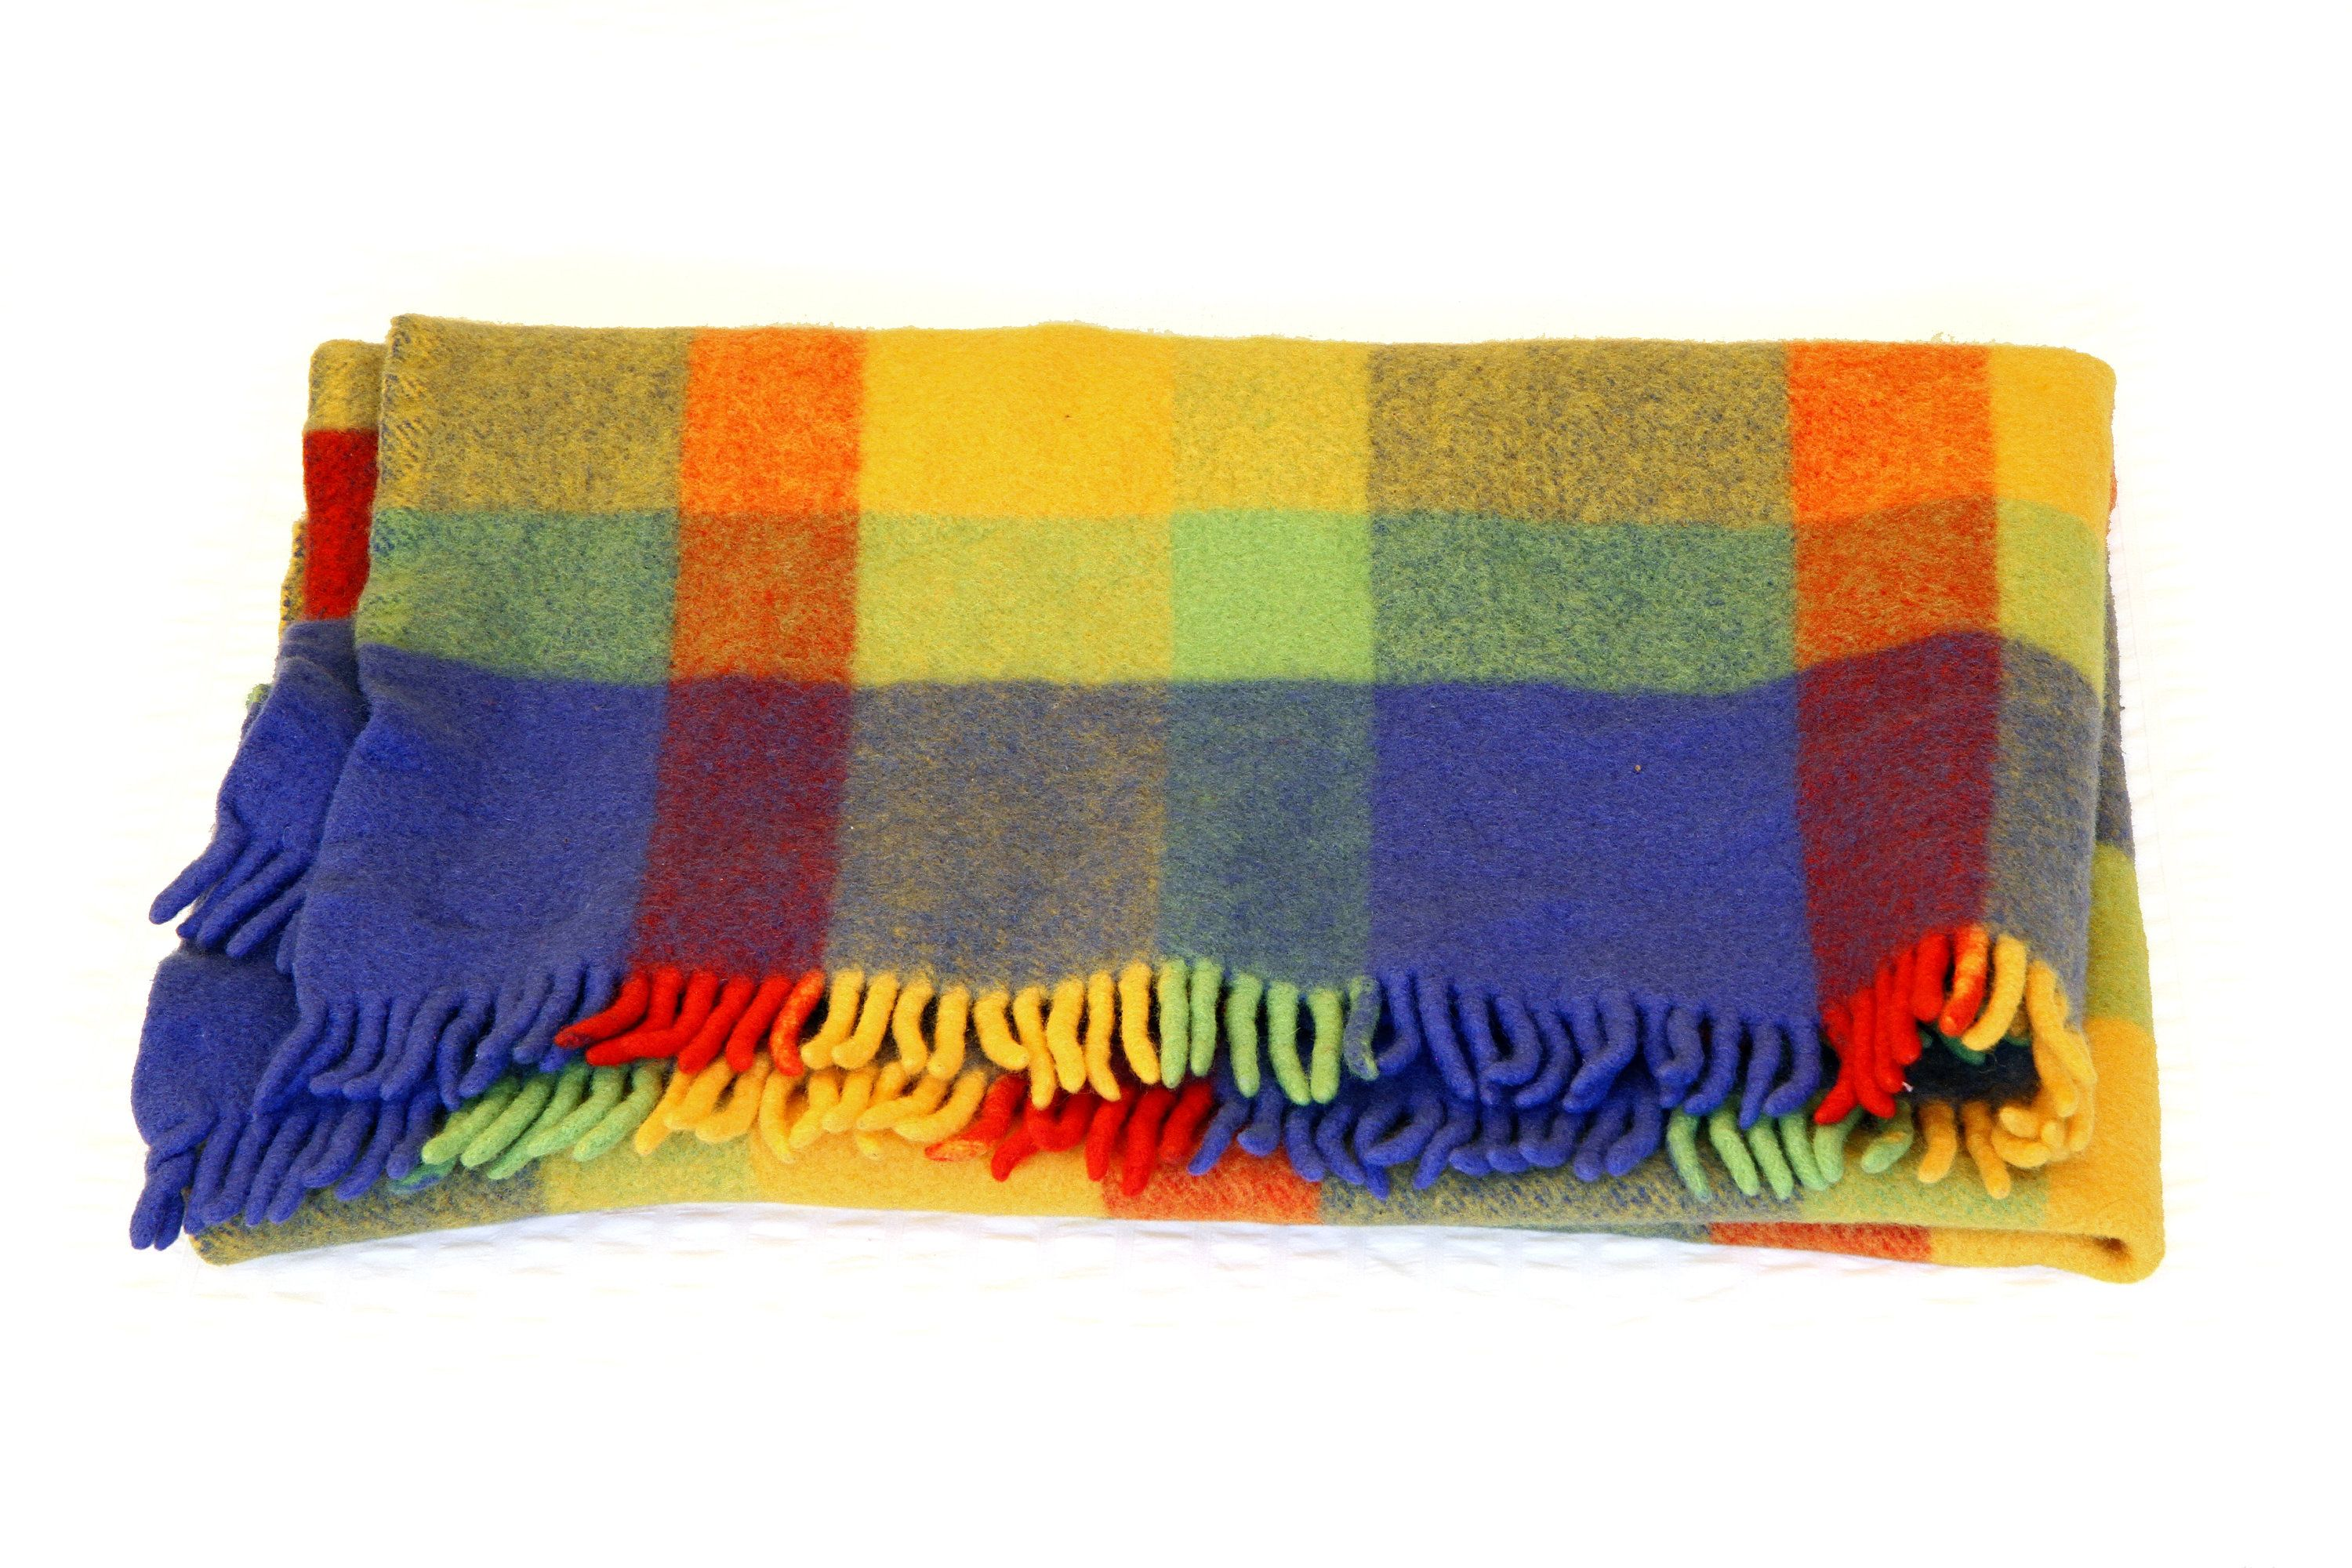 Colorful Throw Blankets Glamorous Wool Throw Blanket Plaid Wool Blanket Rainbow Colors Throw Blanket Review